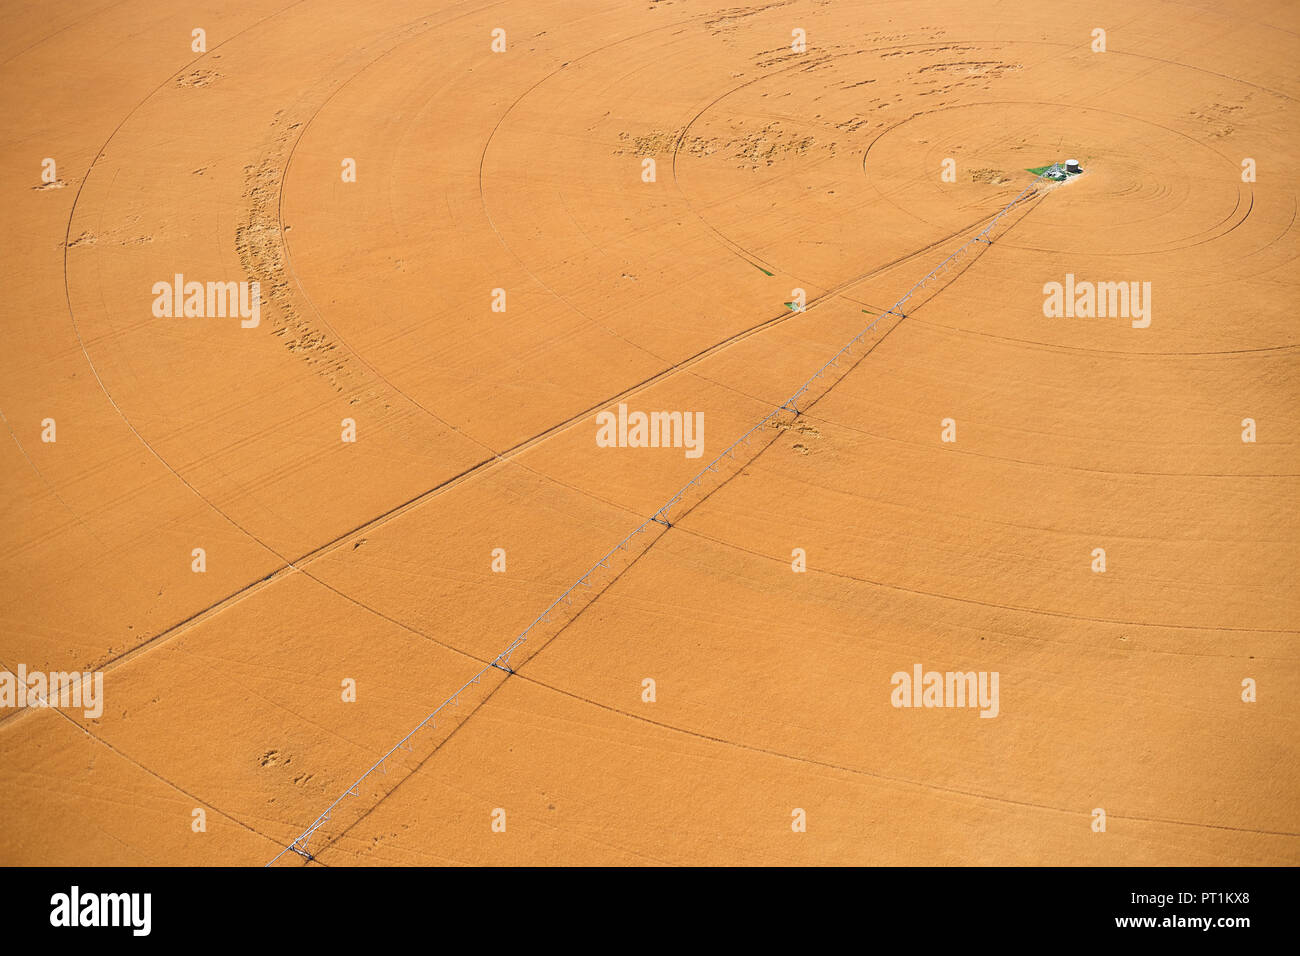 USA, Aerial of irrigated wheat field in Eastern Colorado, USA - Stock Image